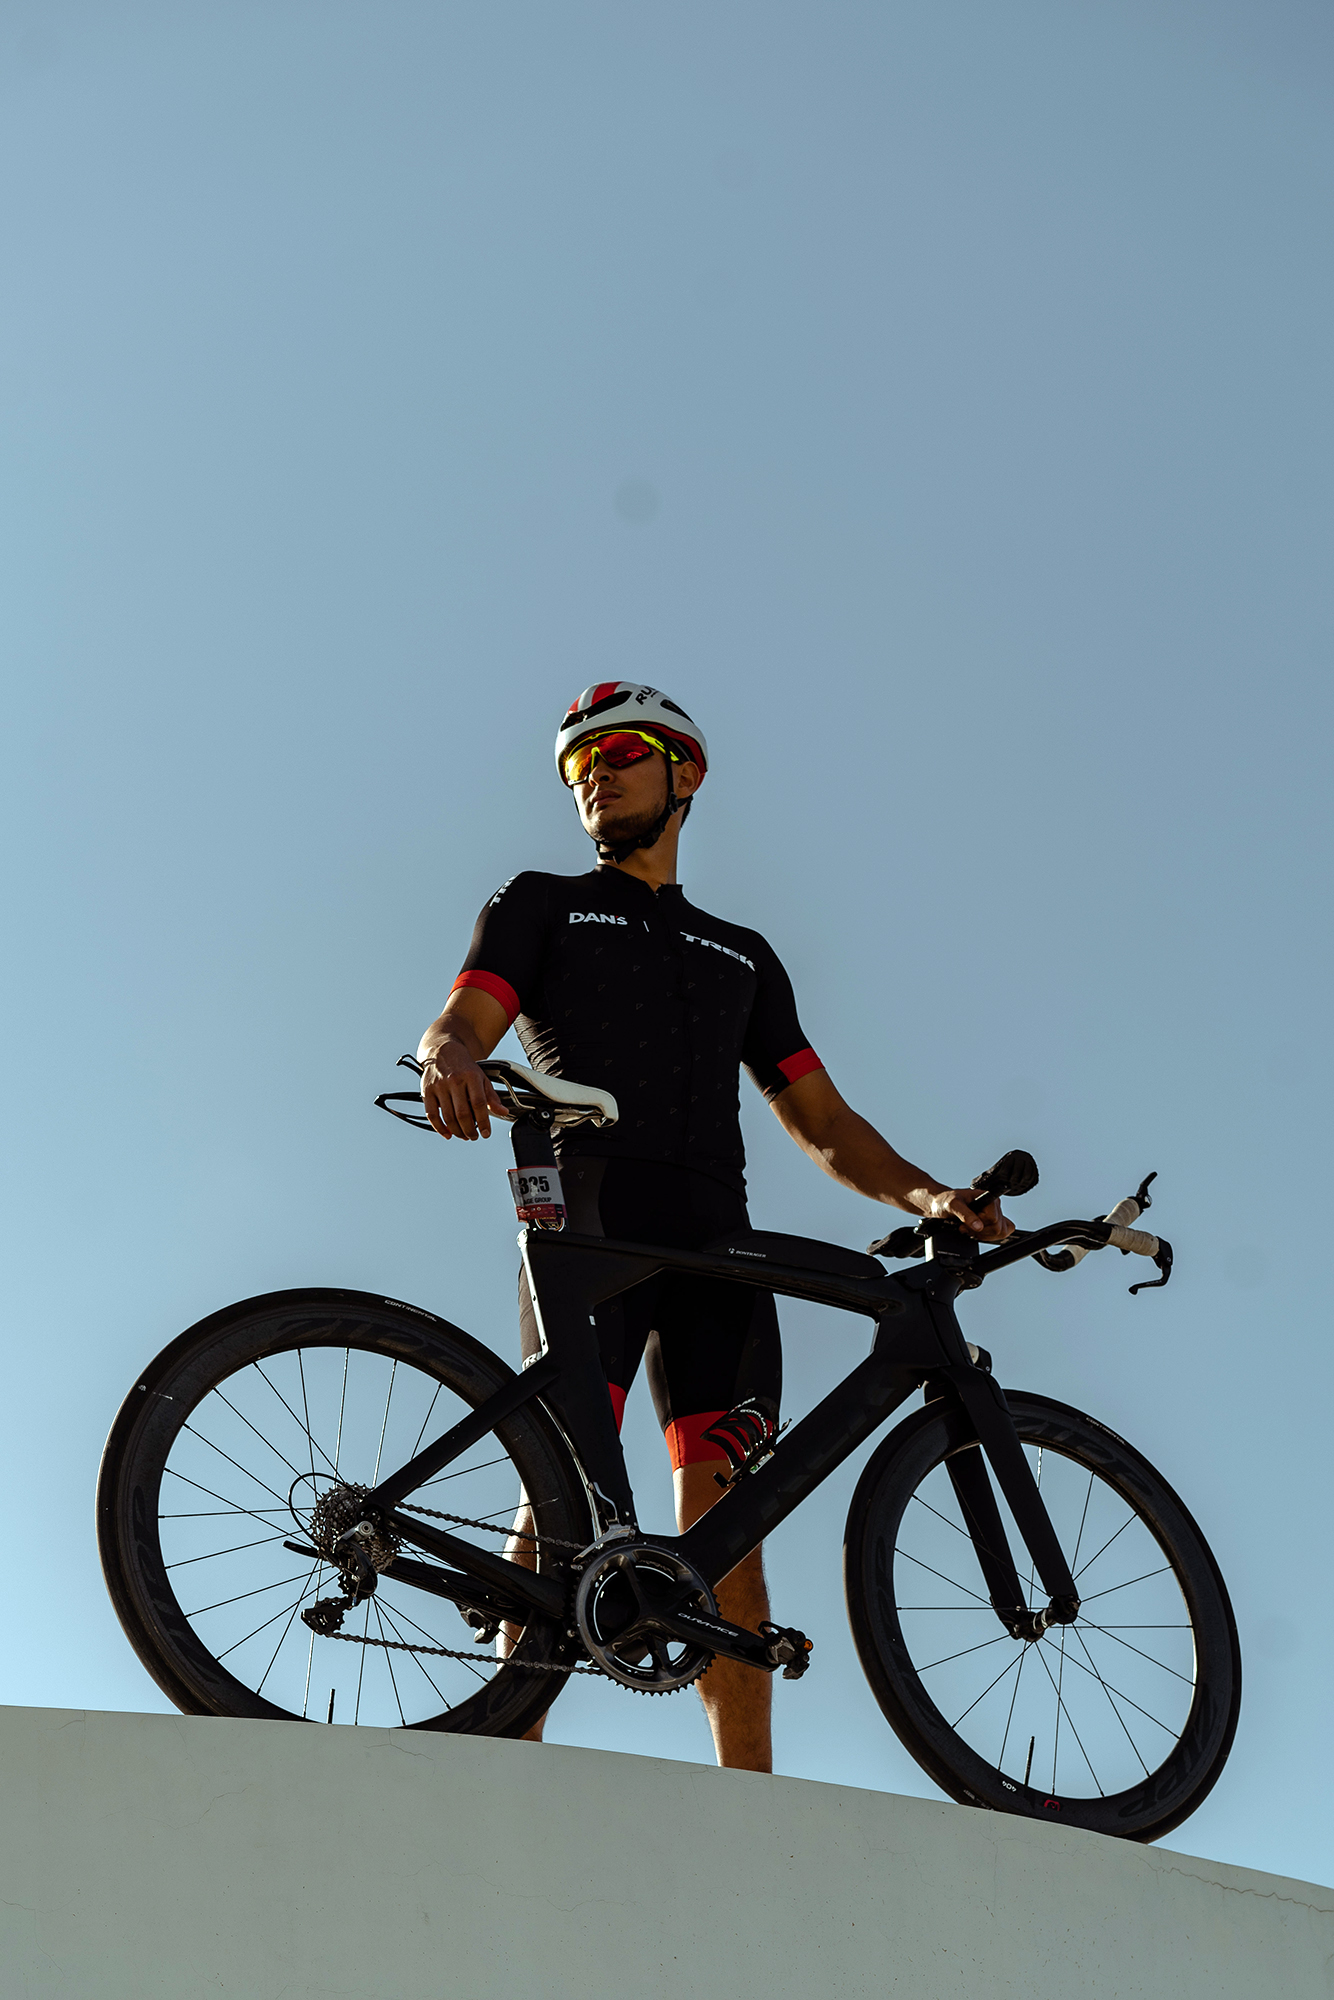 Matteo Guidicelli isn't one to shy away from a challenge even if it means diving into triathlon